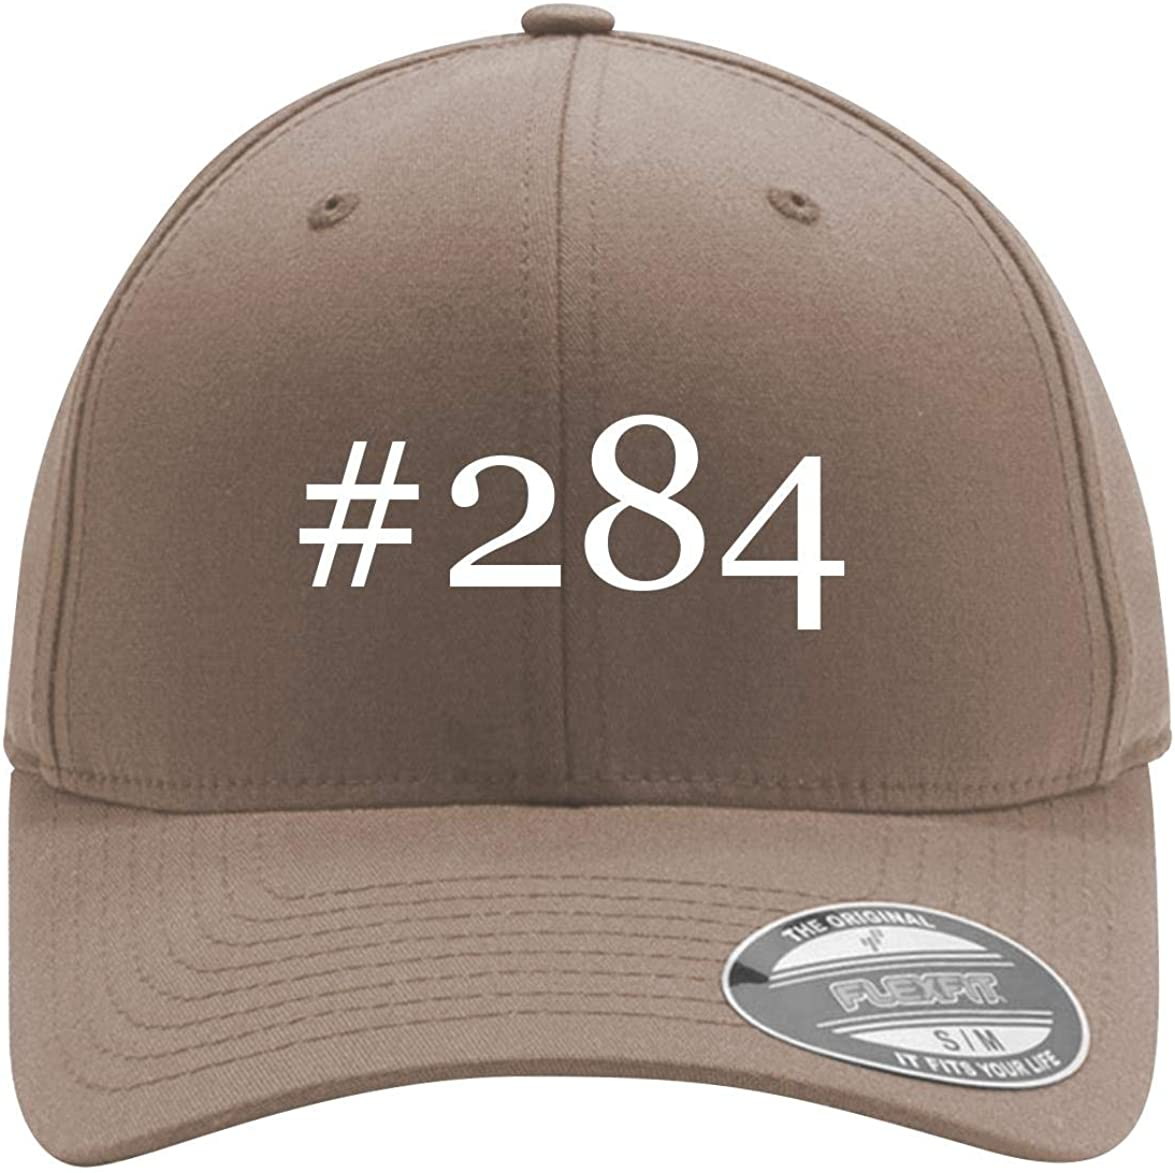 #284 - Adult Men'S Hashtag Flexfit Baseball Hut Cap